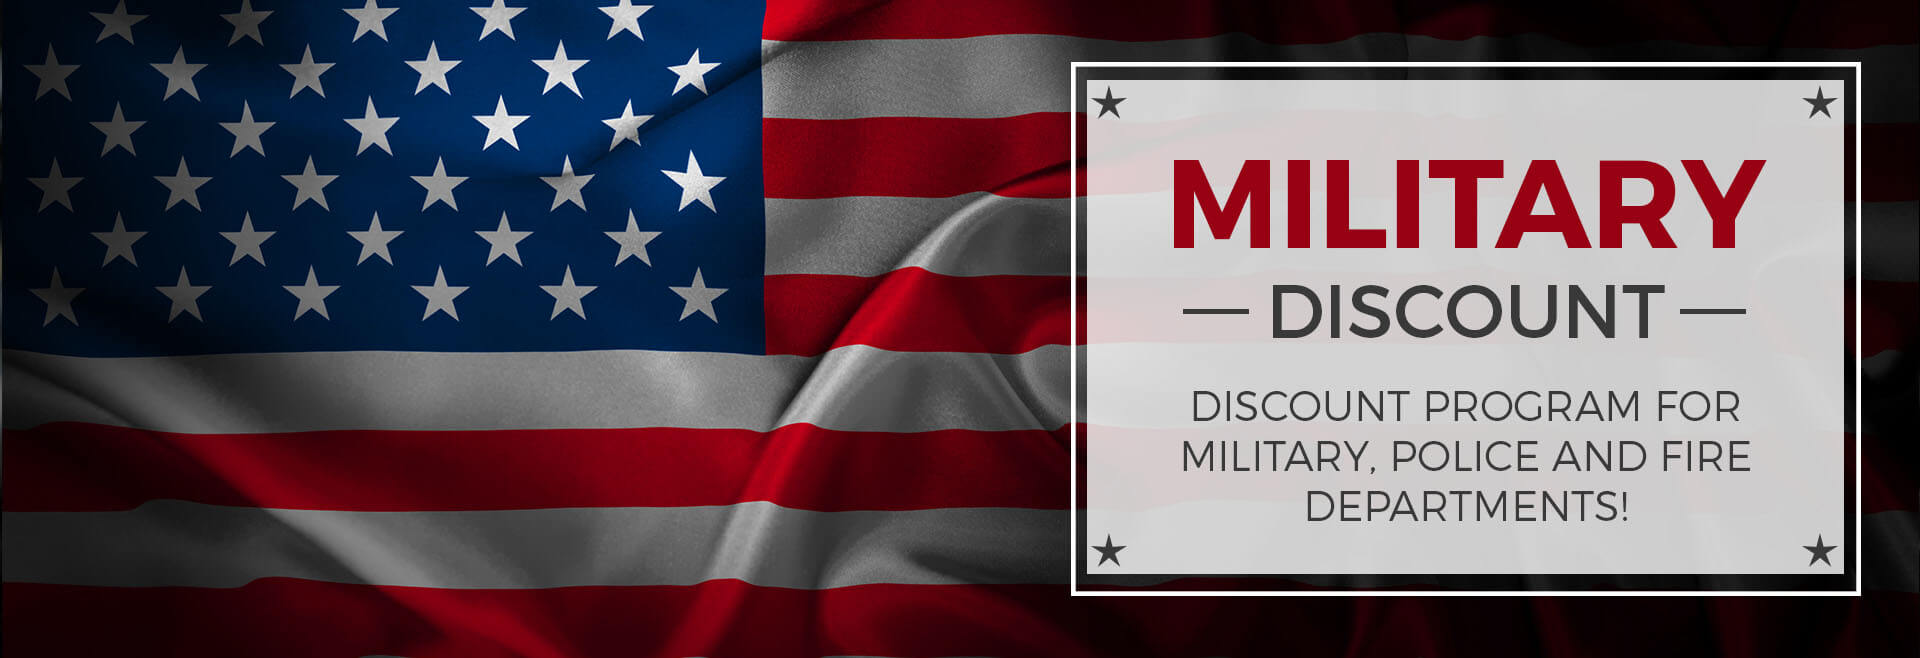 Sonesta Military Discounts - FirstResponders